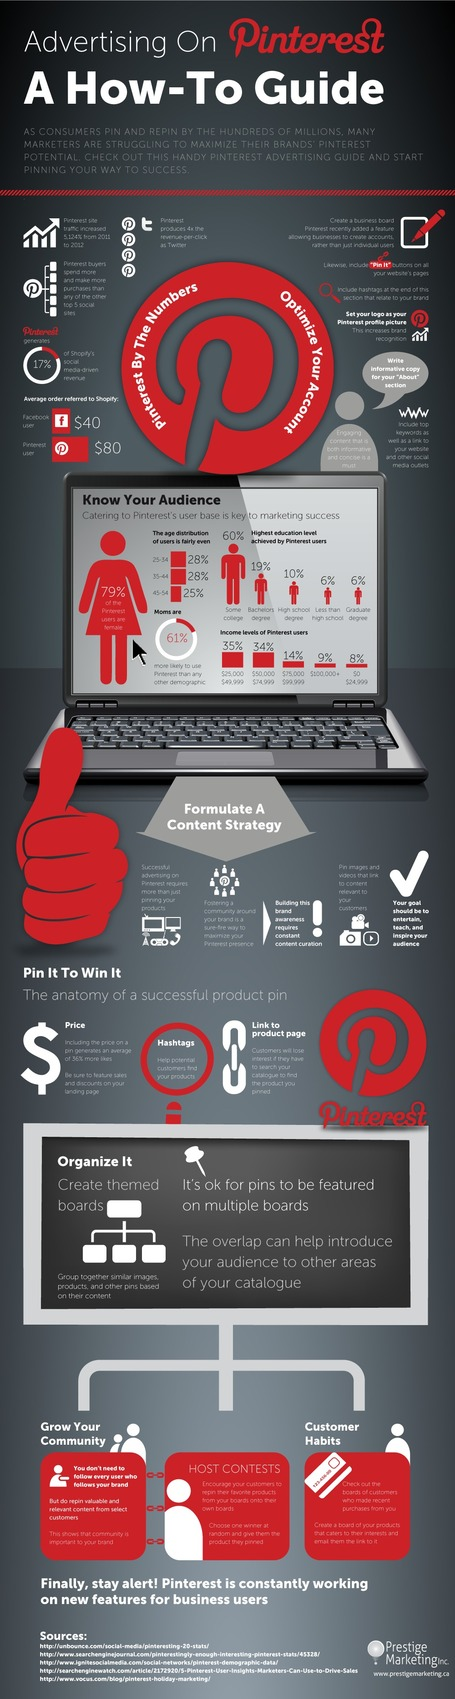 Marketing on Pinterest [INFOGRAPHIC] | Content Curation Tools | Scoop.it